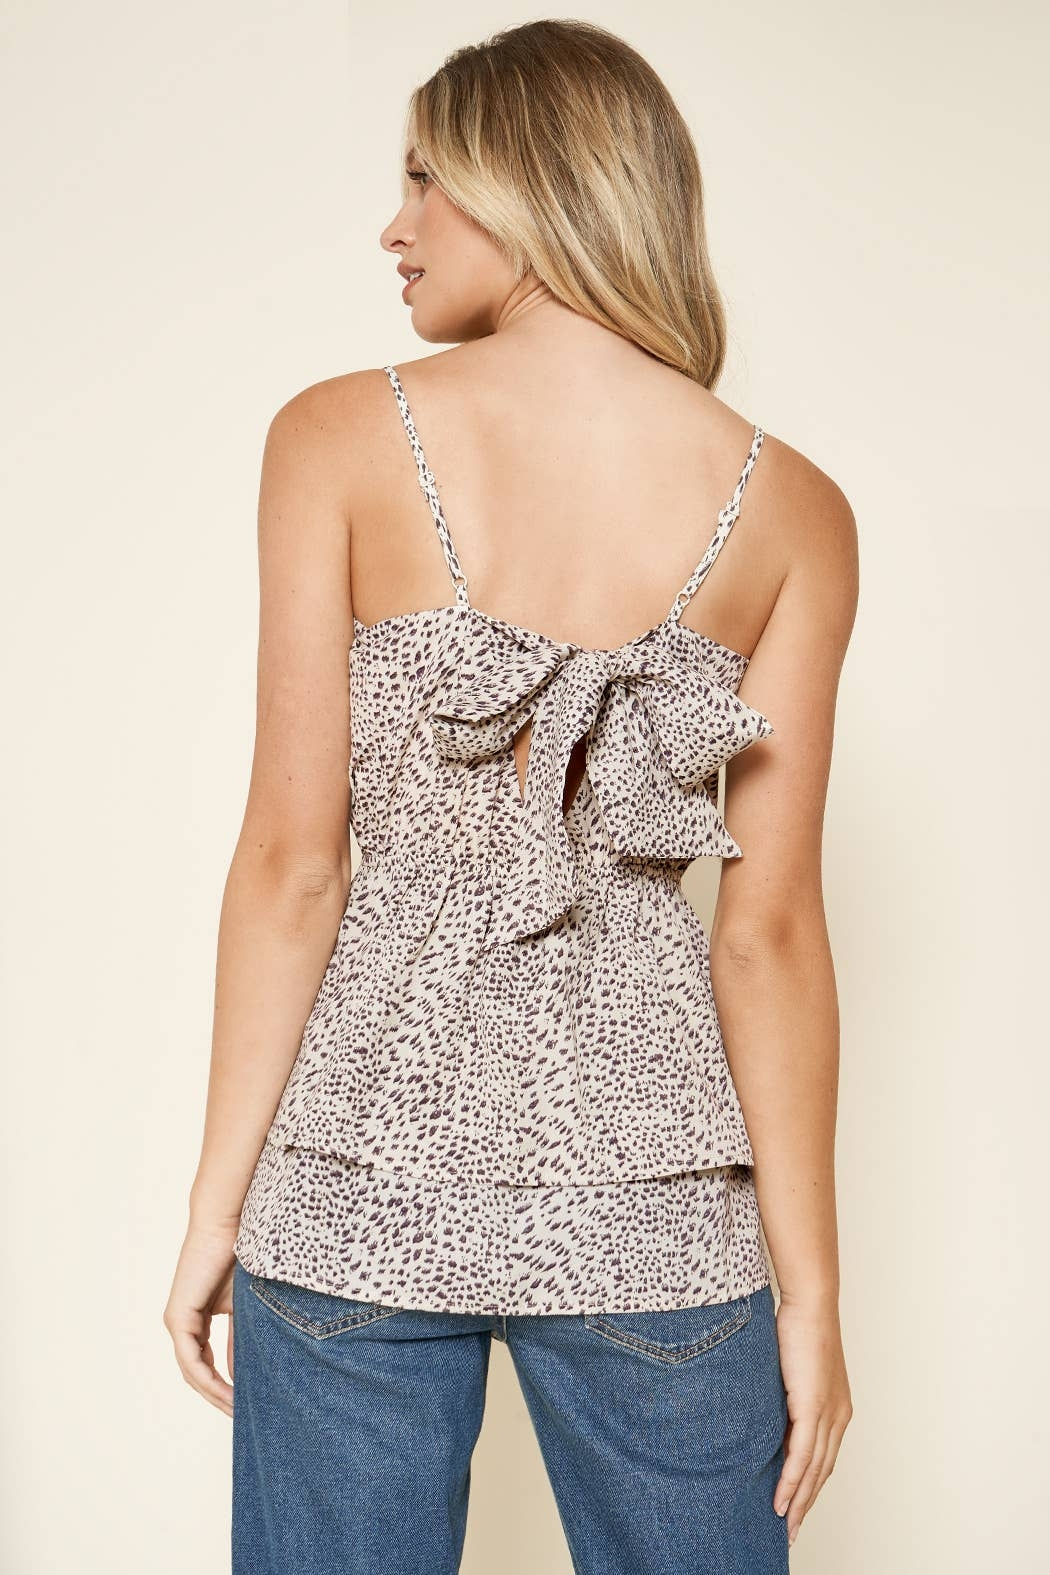 Sugarlips Carnaby Leopard Cami Top - Side Cropped Image